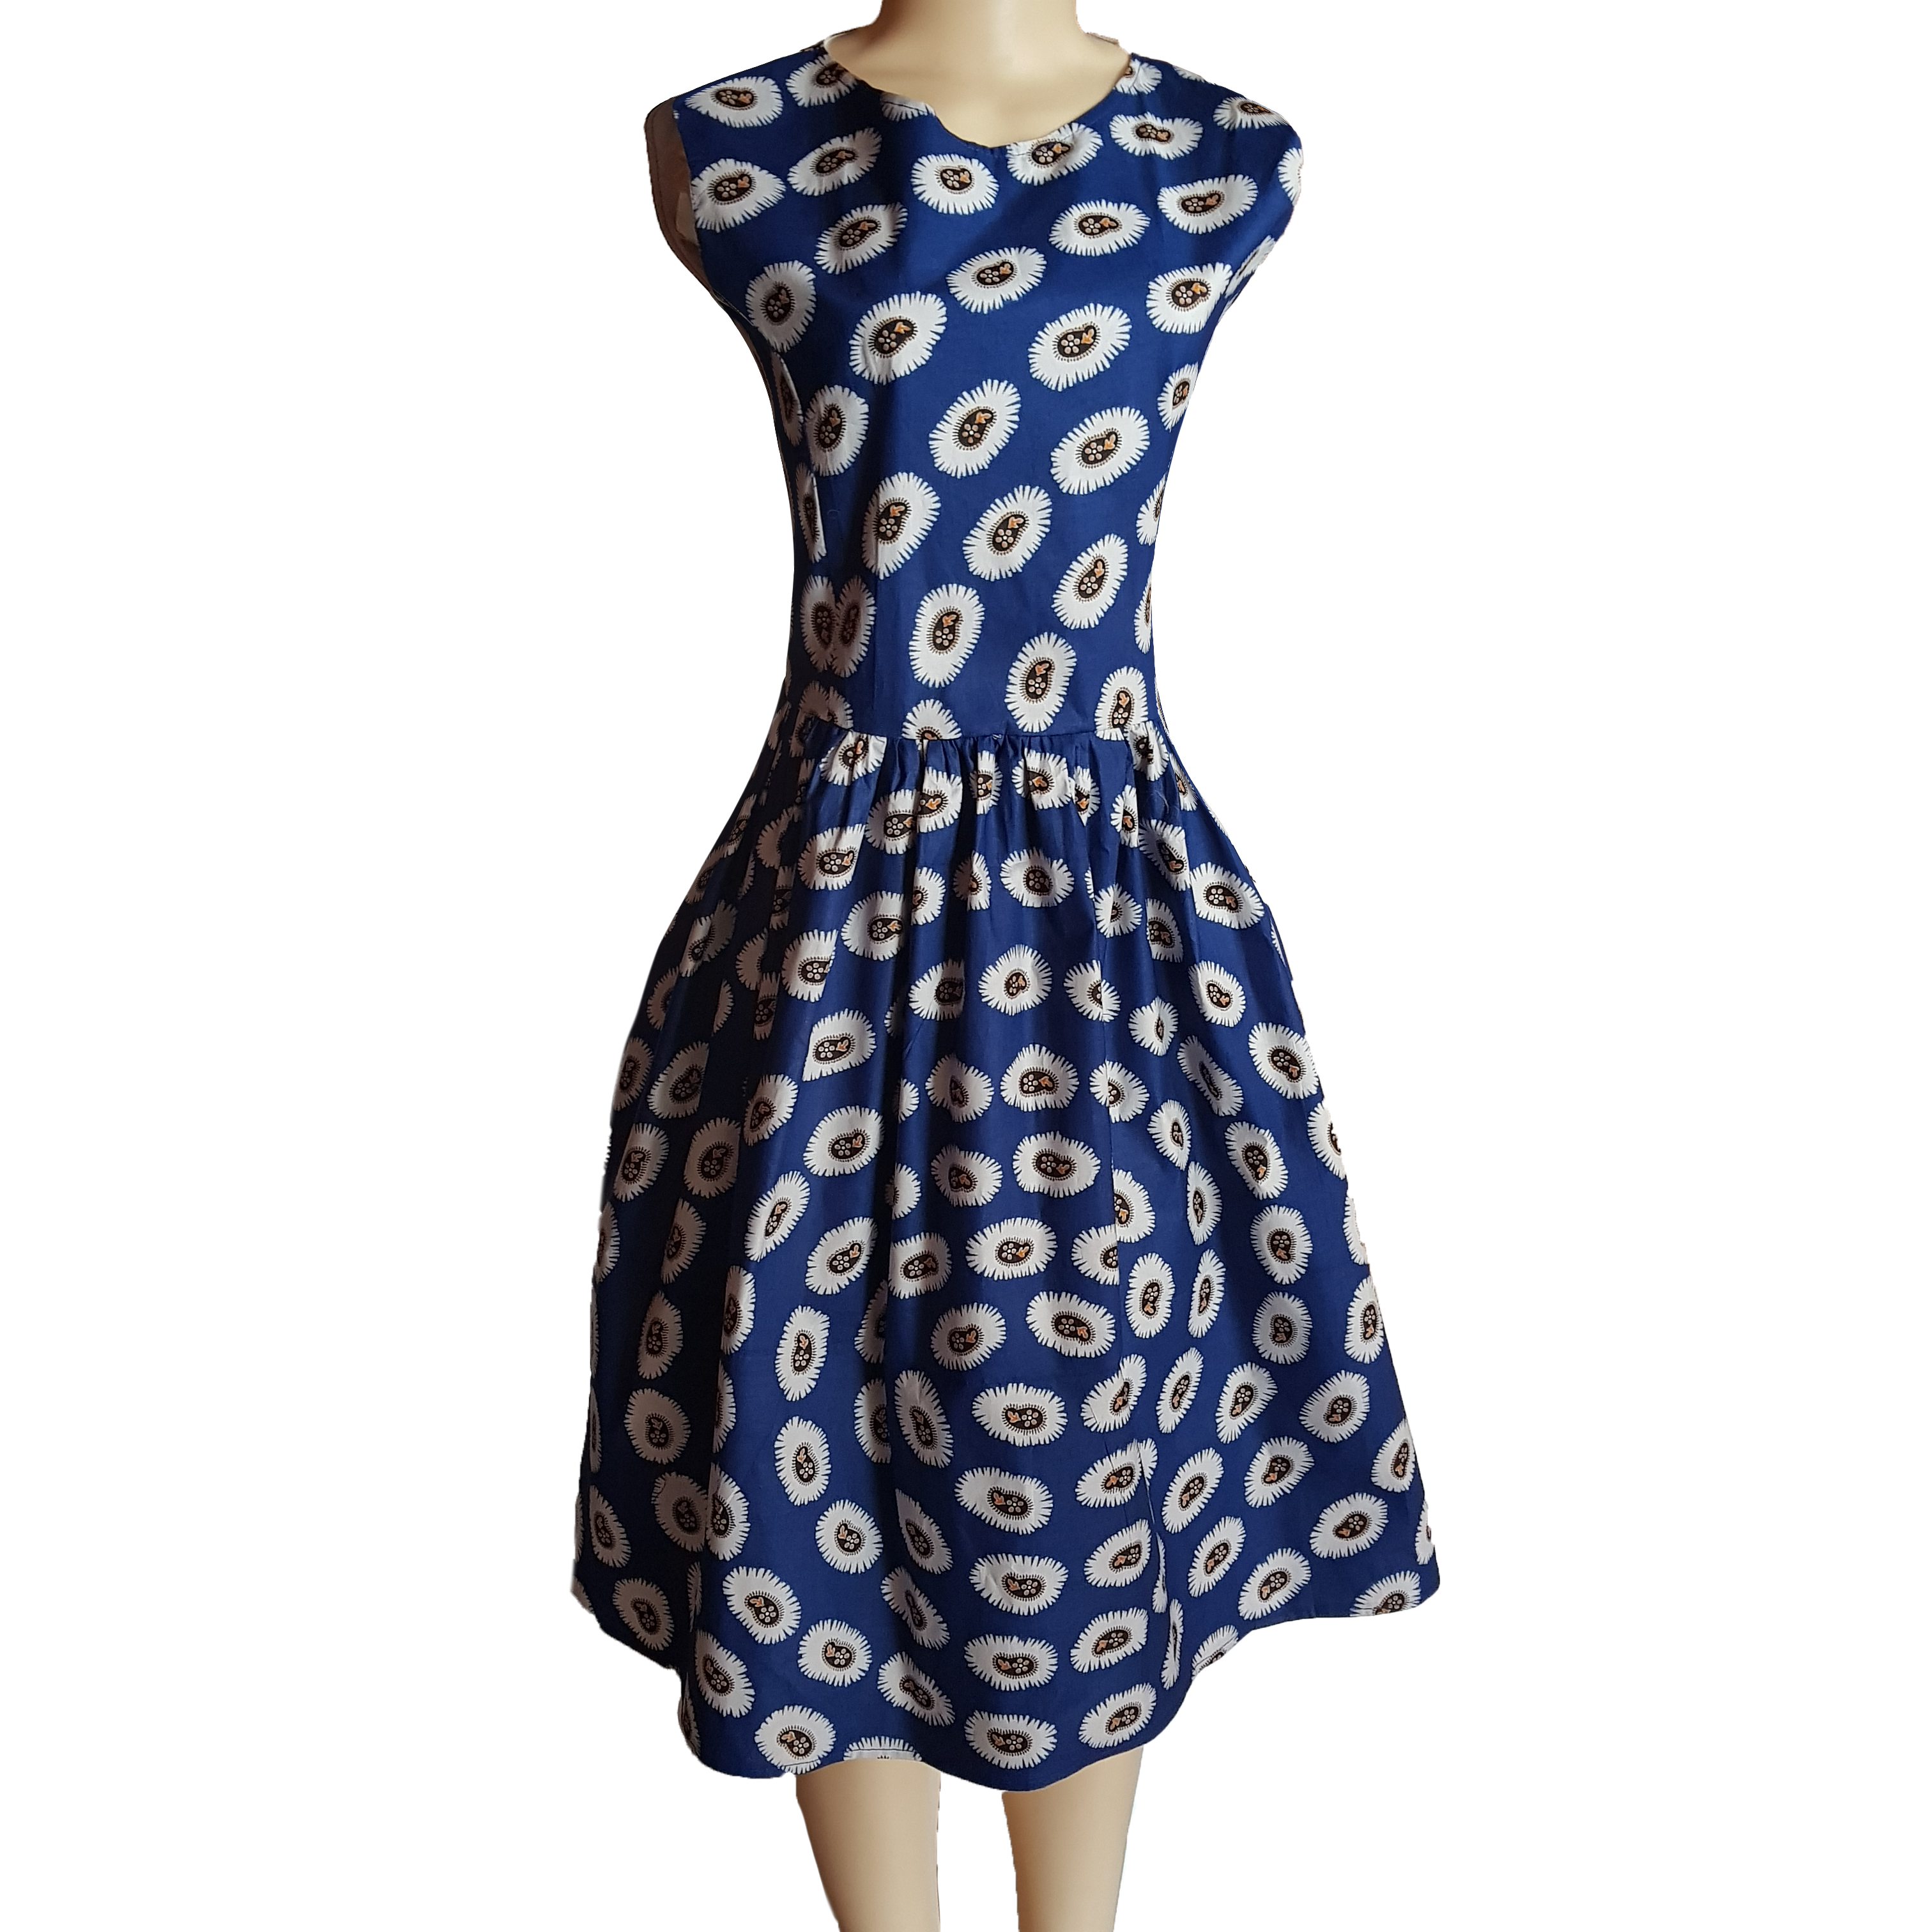 Modern traditional angolan print summer dress 6 an awesome look for spring and summer. An angolan traditional blue print made into a modern traditional summer dress, creating a comfortable and feel free dress for you to wear on a casual relaxing day out.